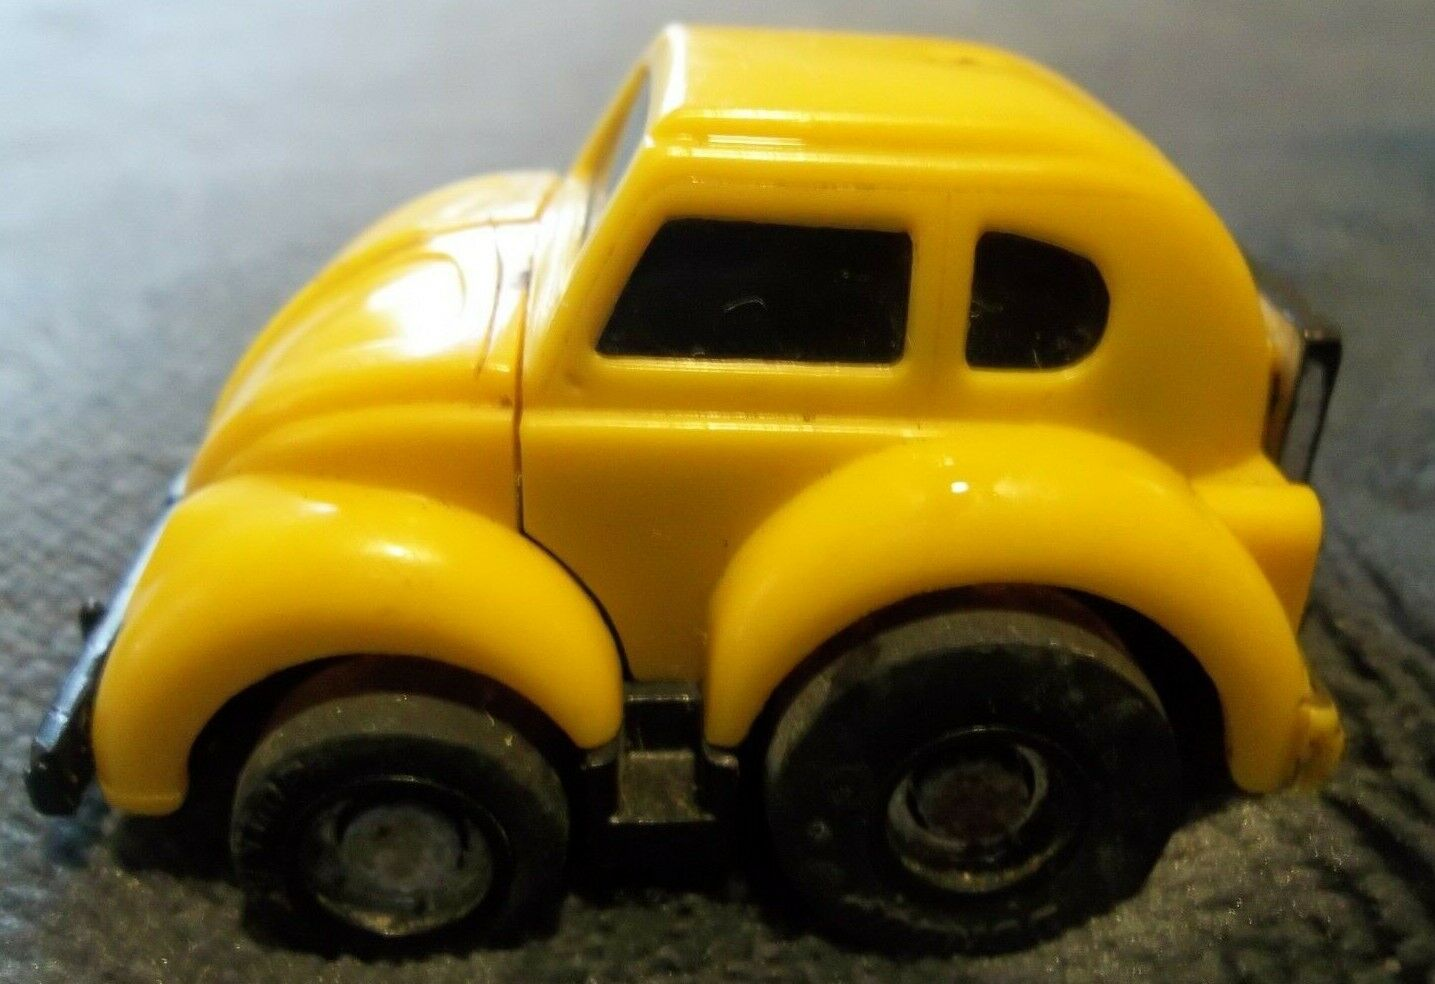 Vintage TRANSFORMERS G1 Bumblebee Yellow VW Autobot MINI VEHICLE 1984 Complete